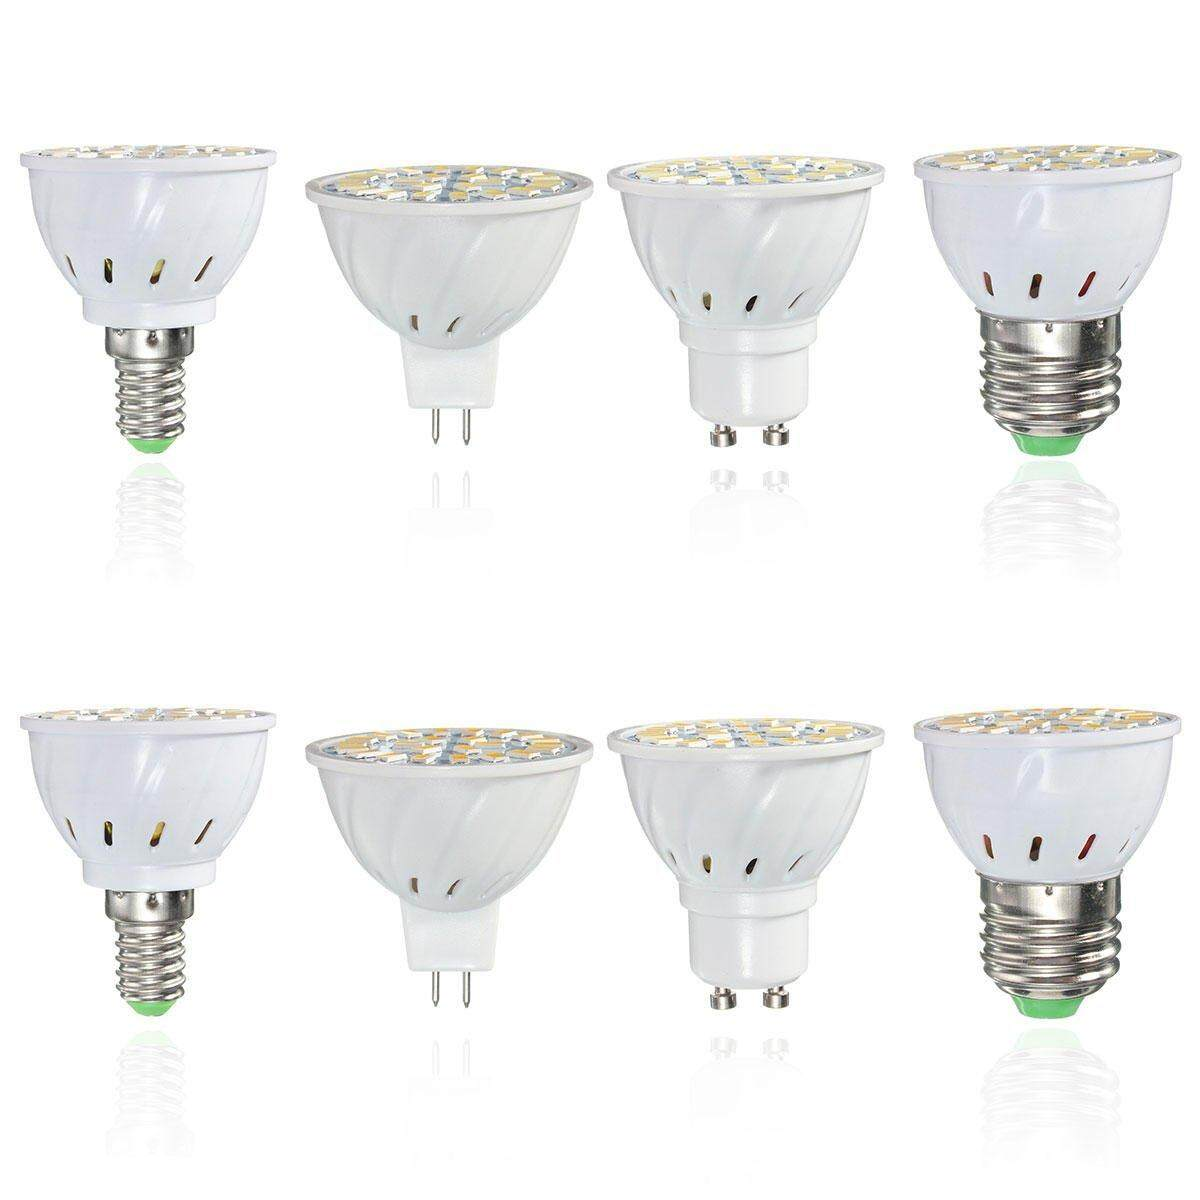 Brelong E27 E14 Gu10 Mr16 36led 2835 Plant Cup Light Ac 220 240v 1pc Sell Mr16 Gu10 E27 Cheapest Best Quality My Store